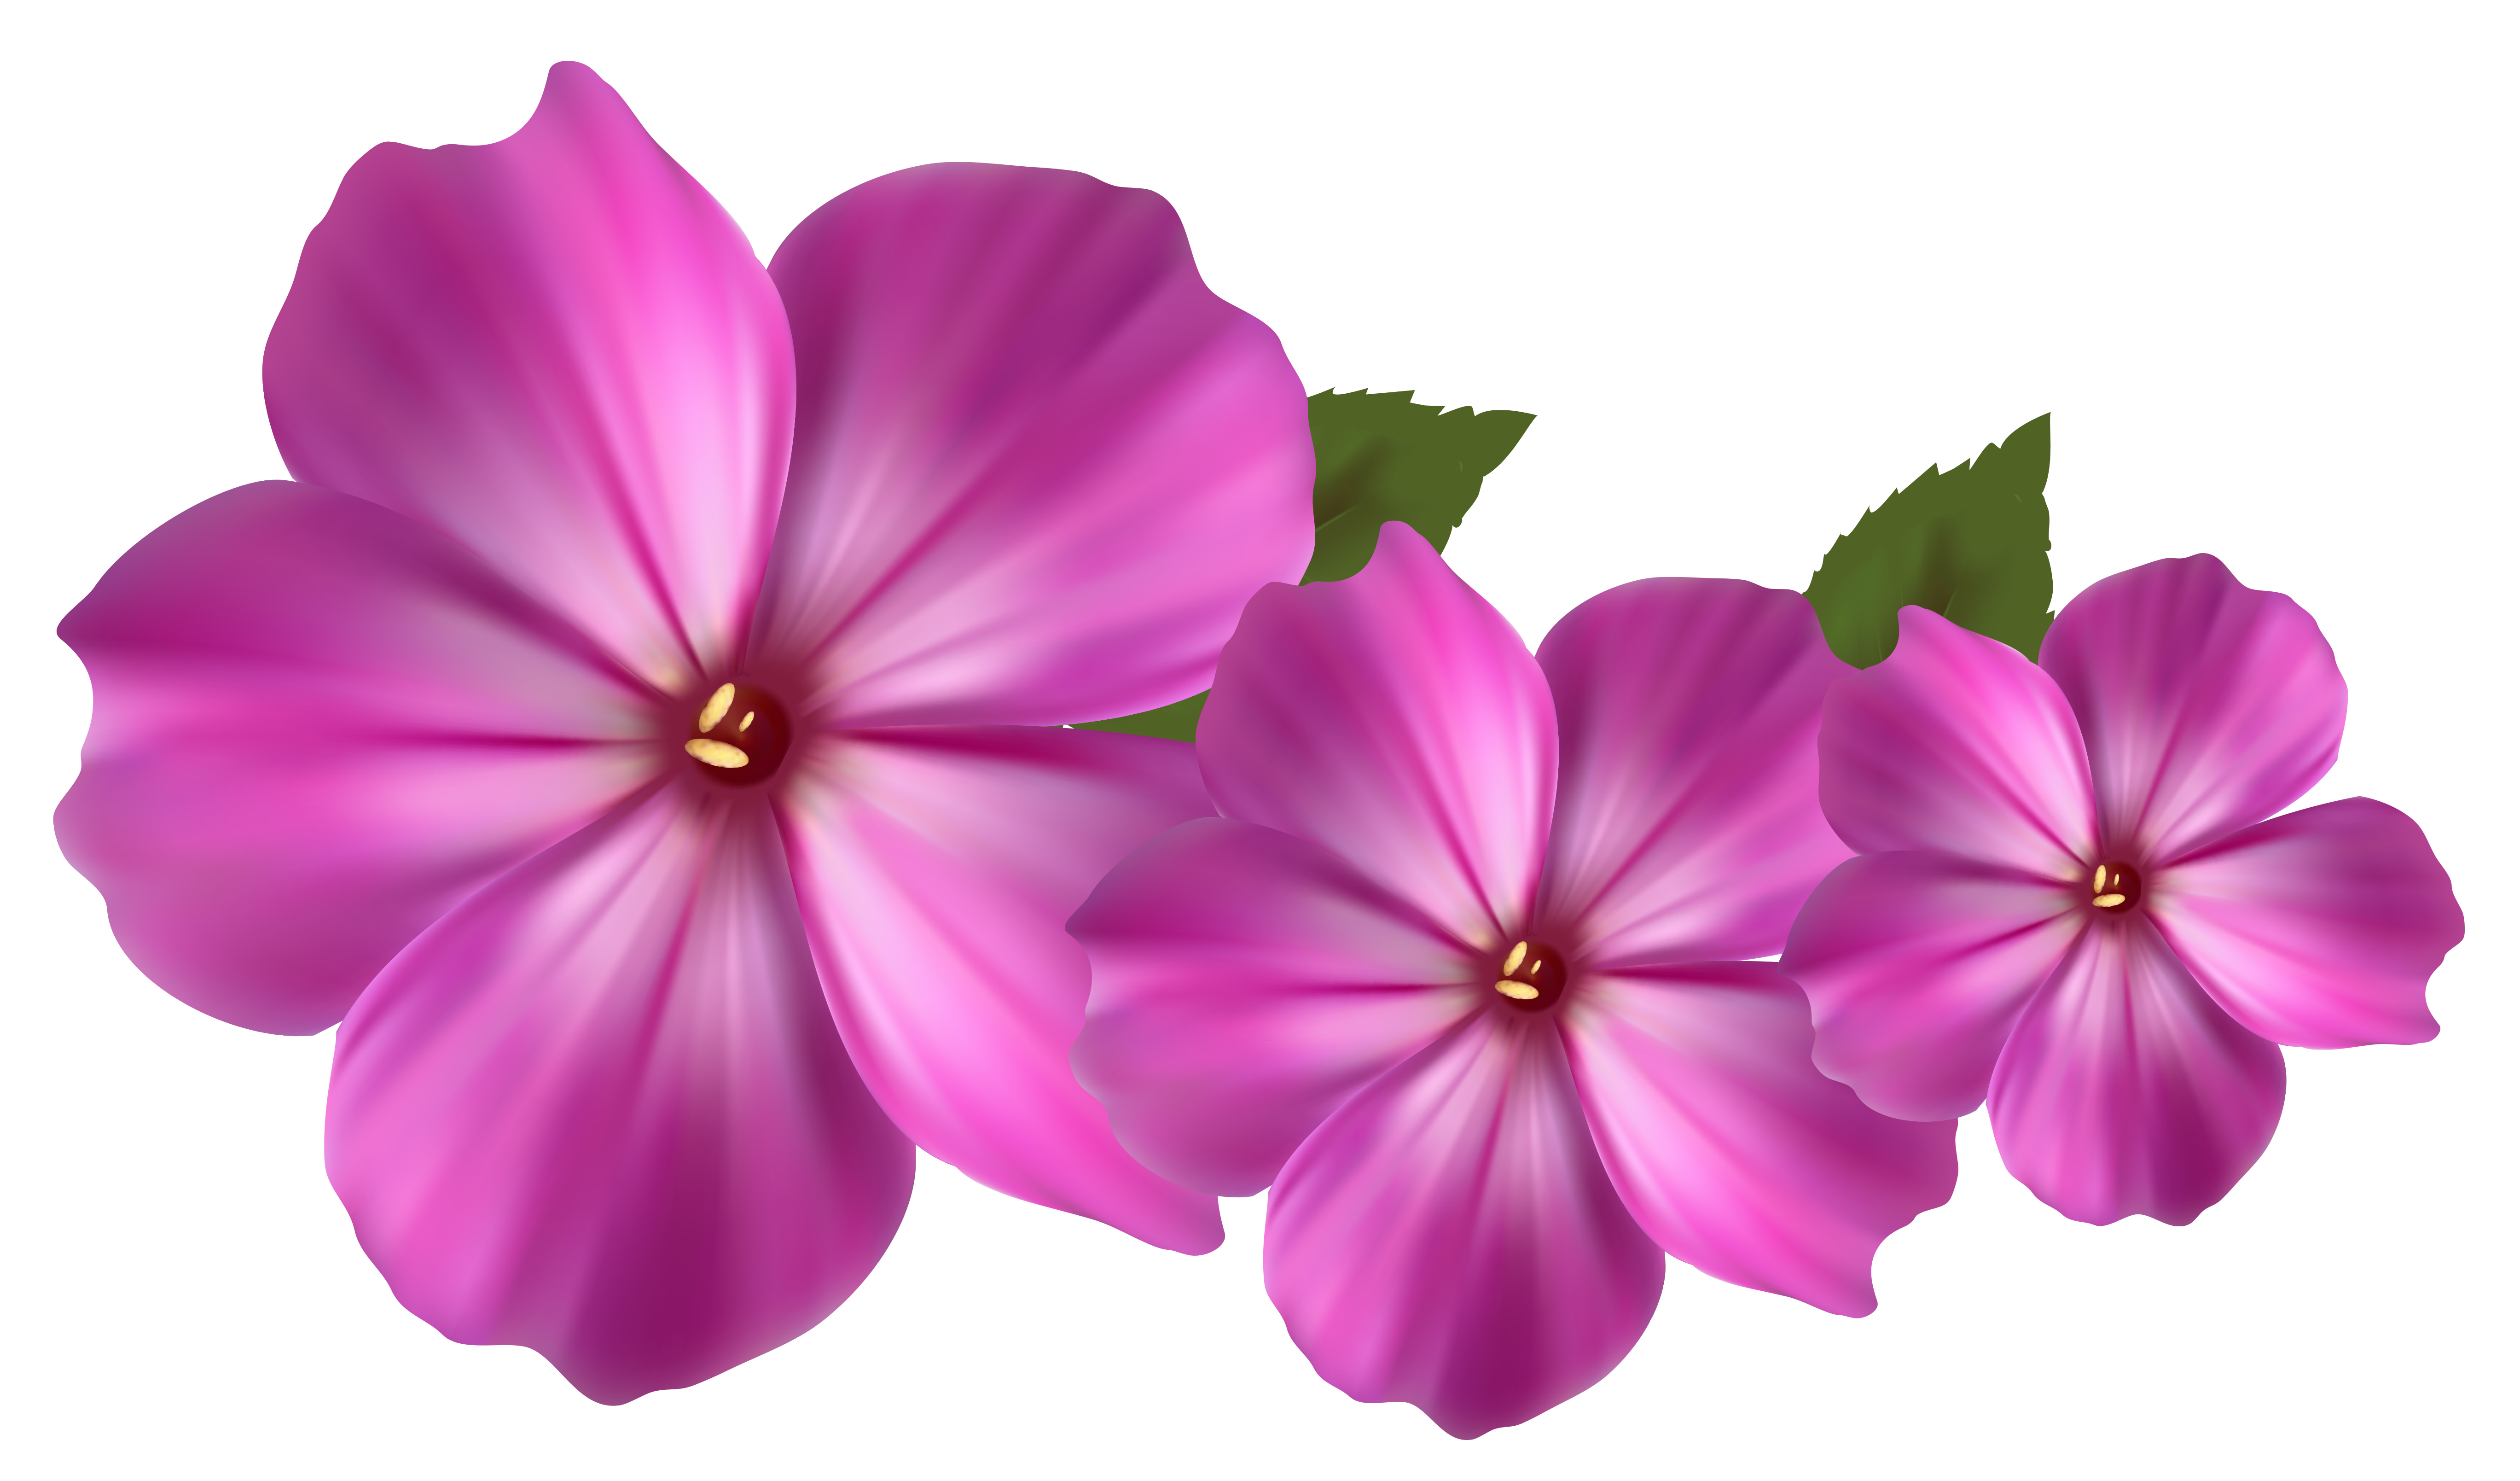 28 Flower Png   Free Cliparts That You Can Download To You Computer